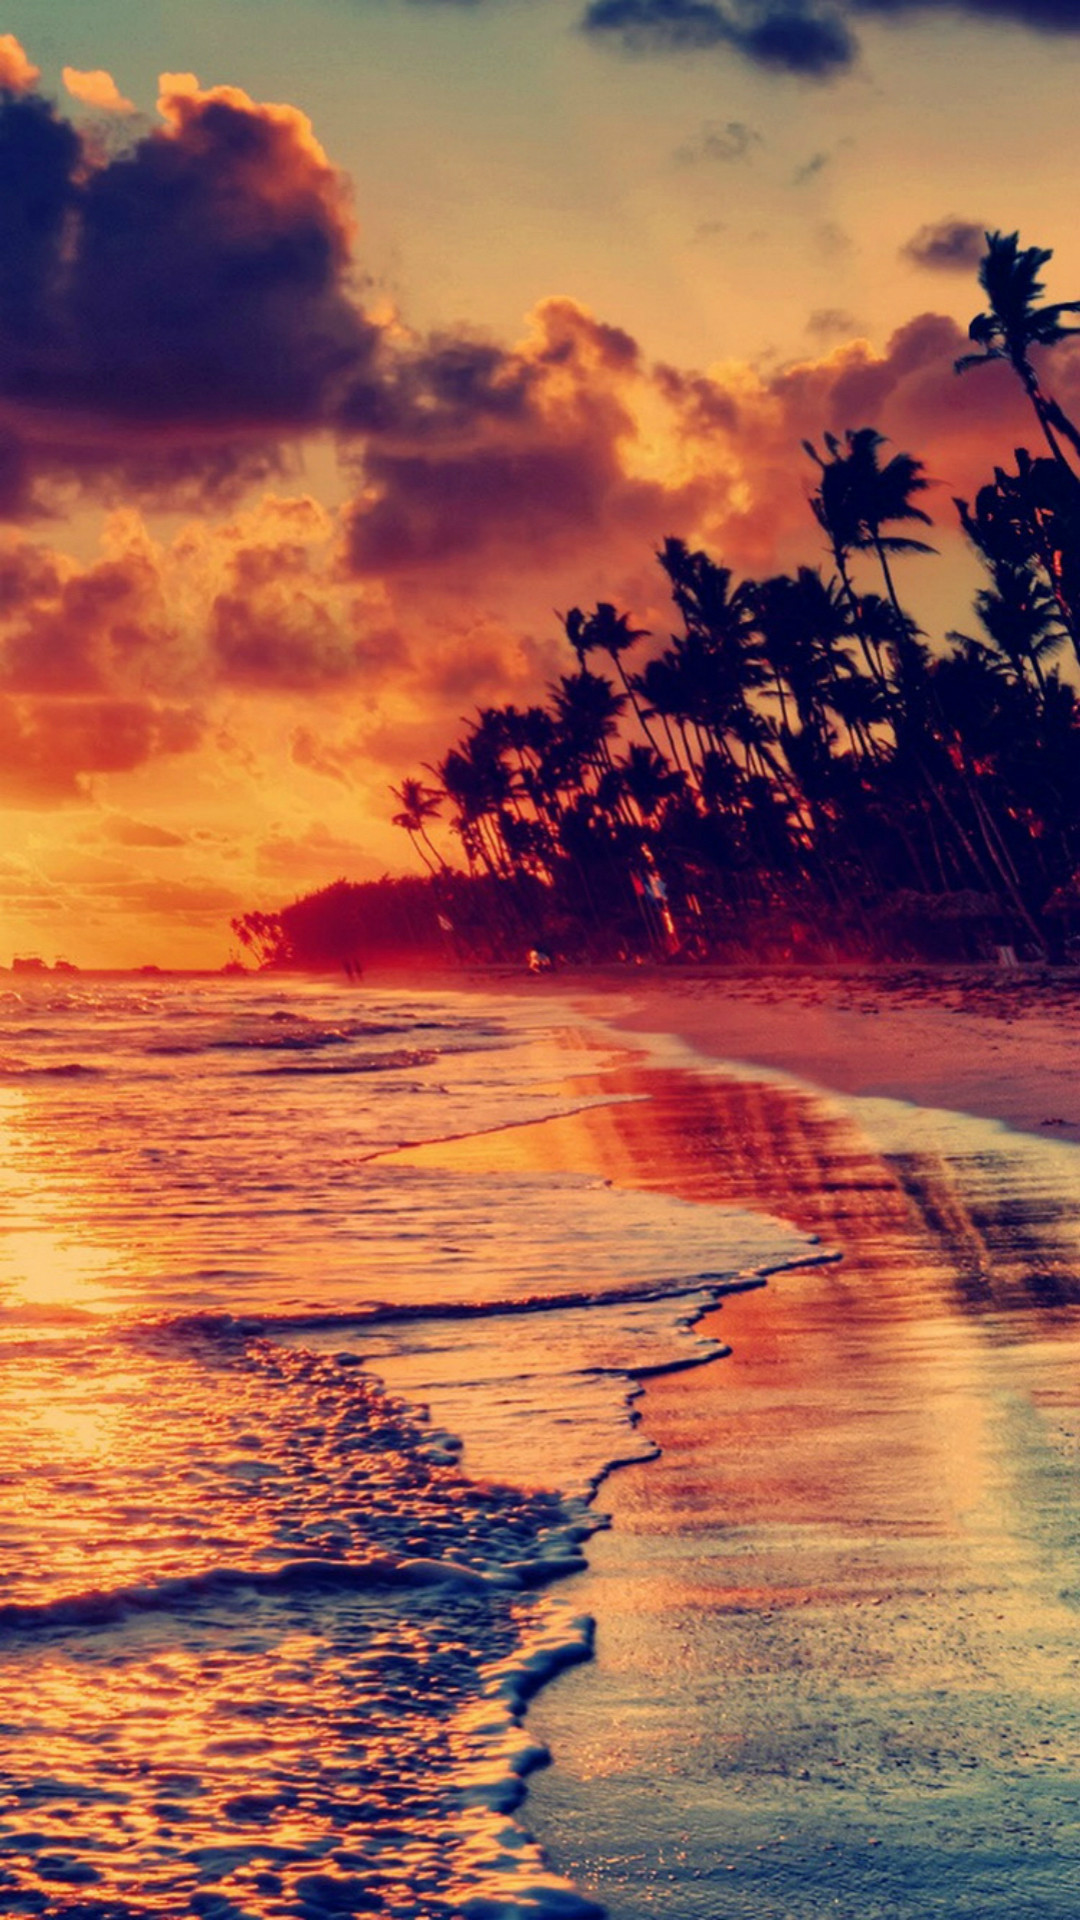 Sunset beach wallpaper 70 images - Beautiful country iphone backgrounds ...